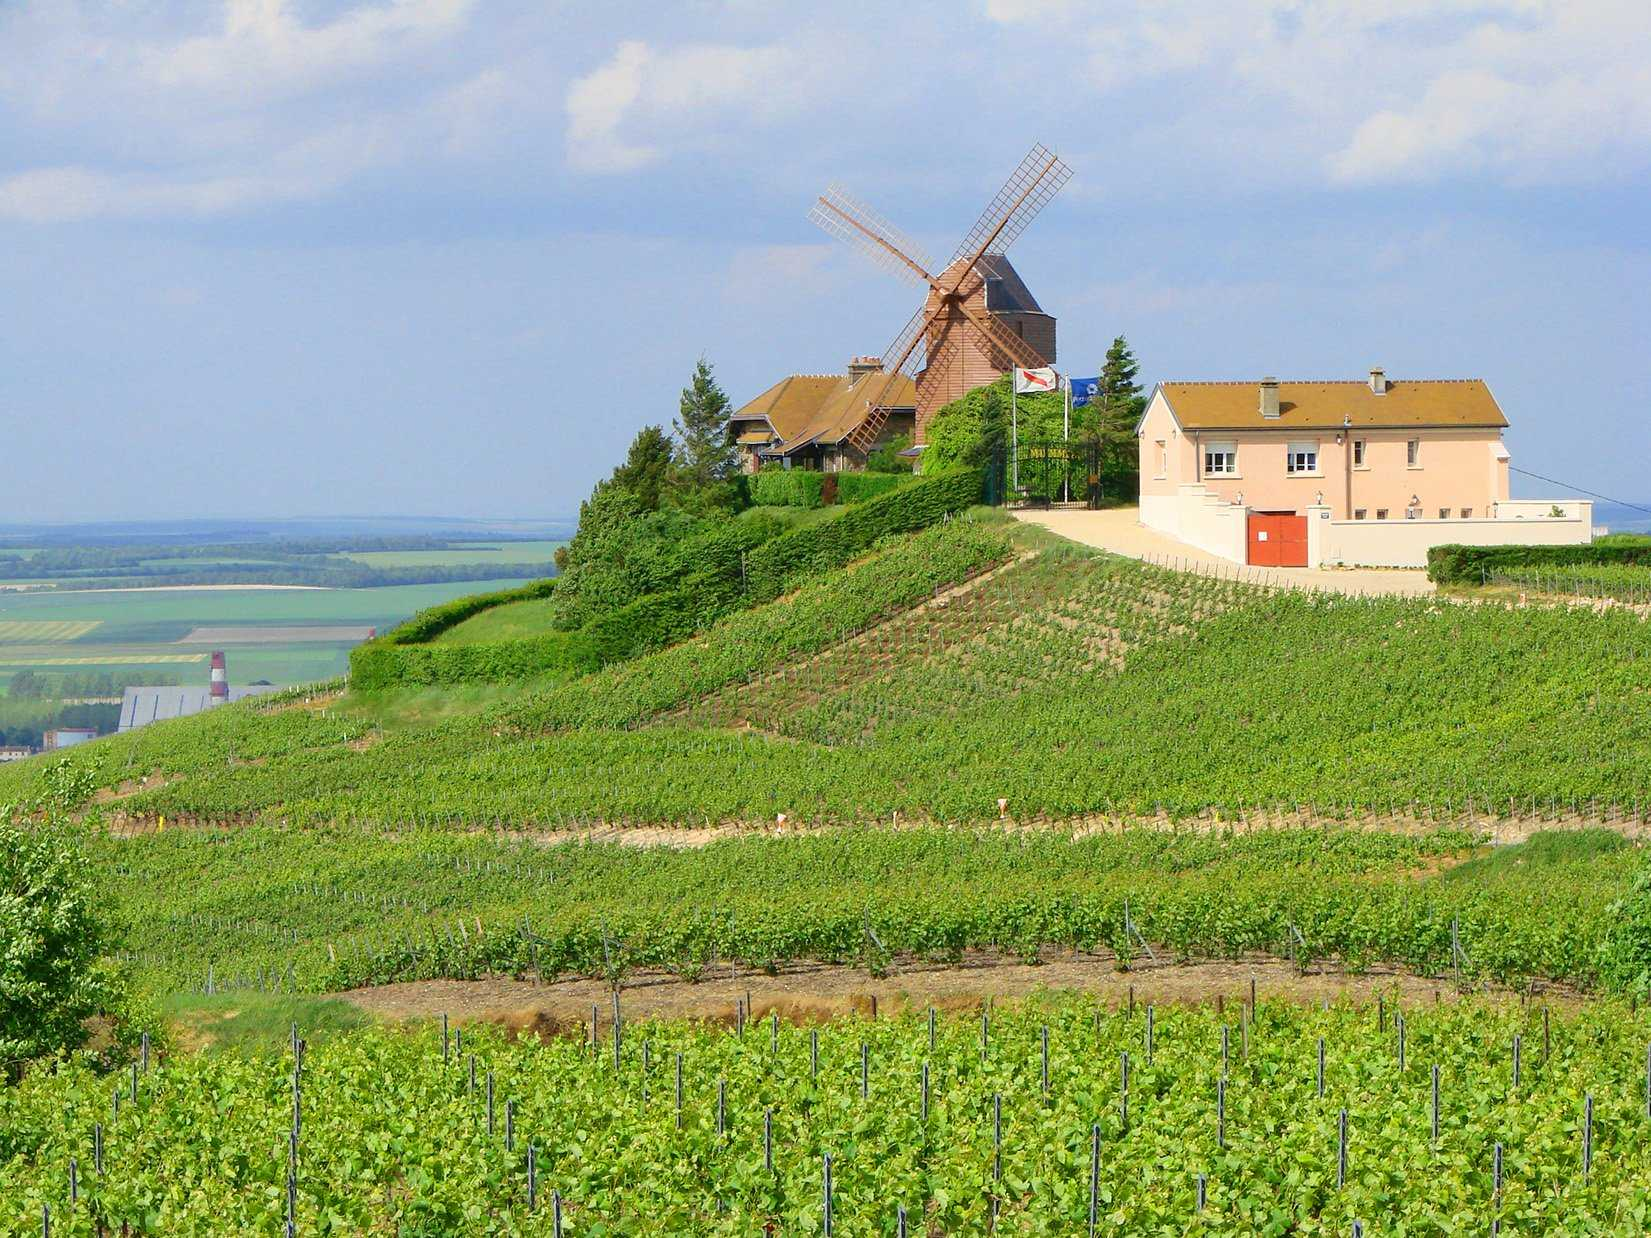 Sip champagne in the Champagne region of France.